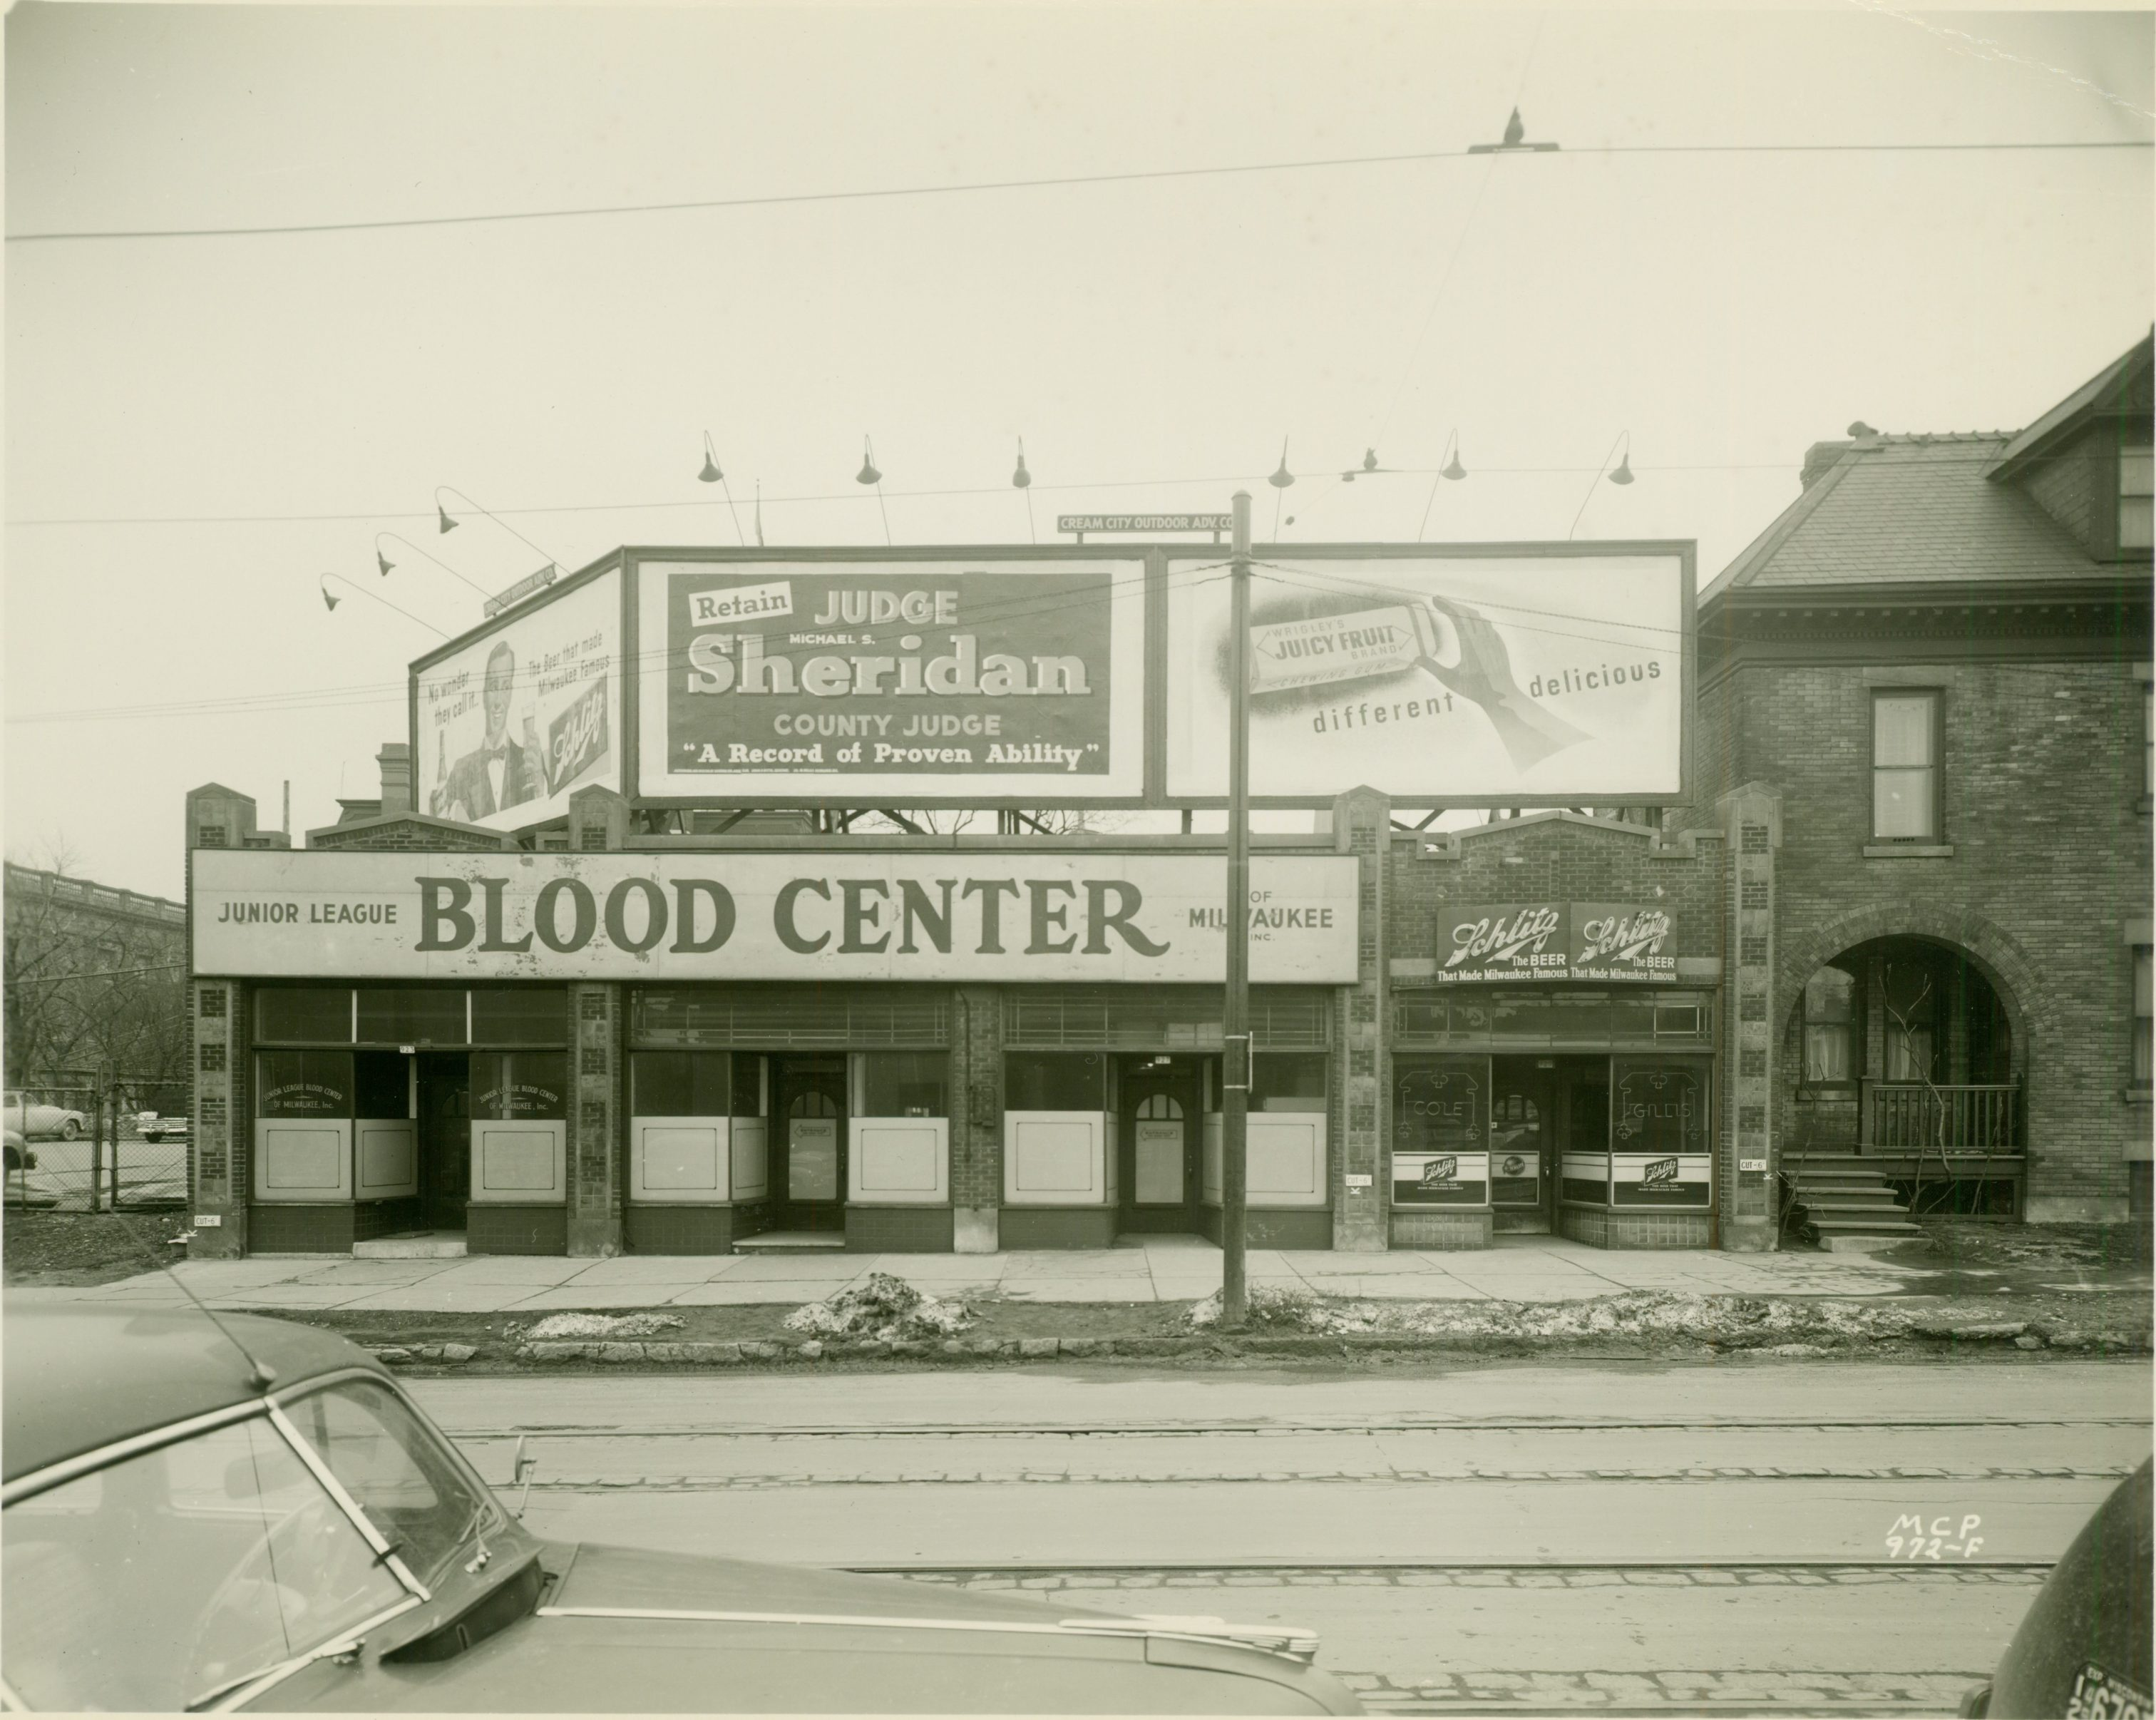 A 1949 photograph of the Junior League's Blood Center storefront on Wells Street just a few years after its founding.